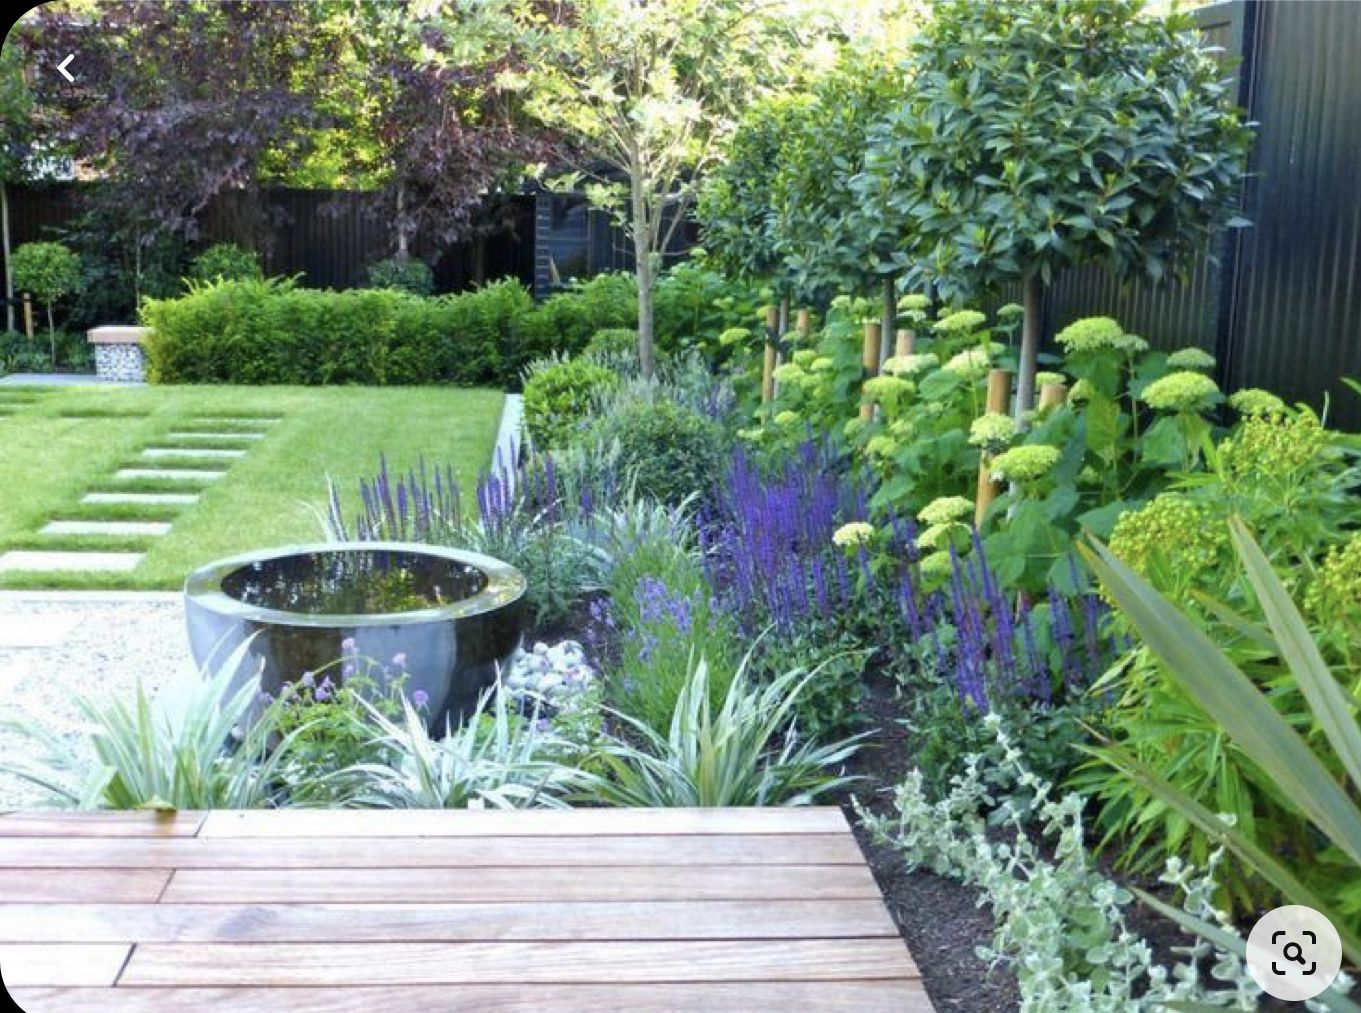 Pin By Mary Connors On Trees In 2020 Garden Design Layout Landscaping Garden Design Layout Lawn Design